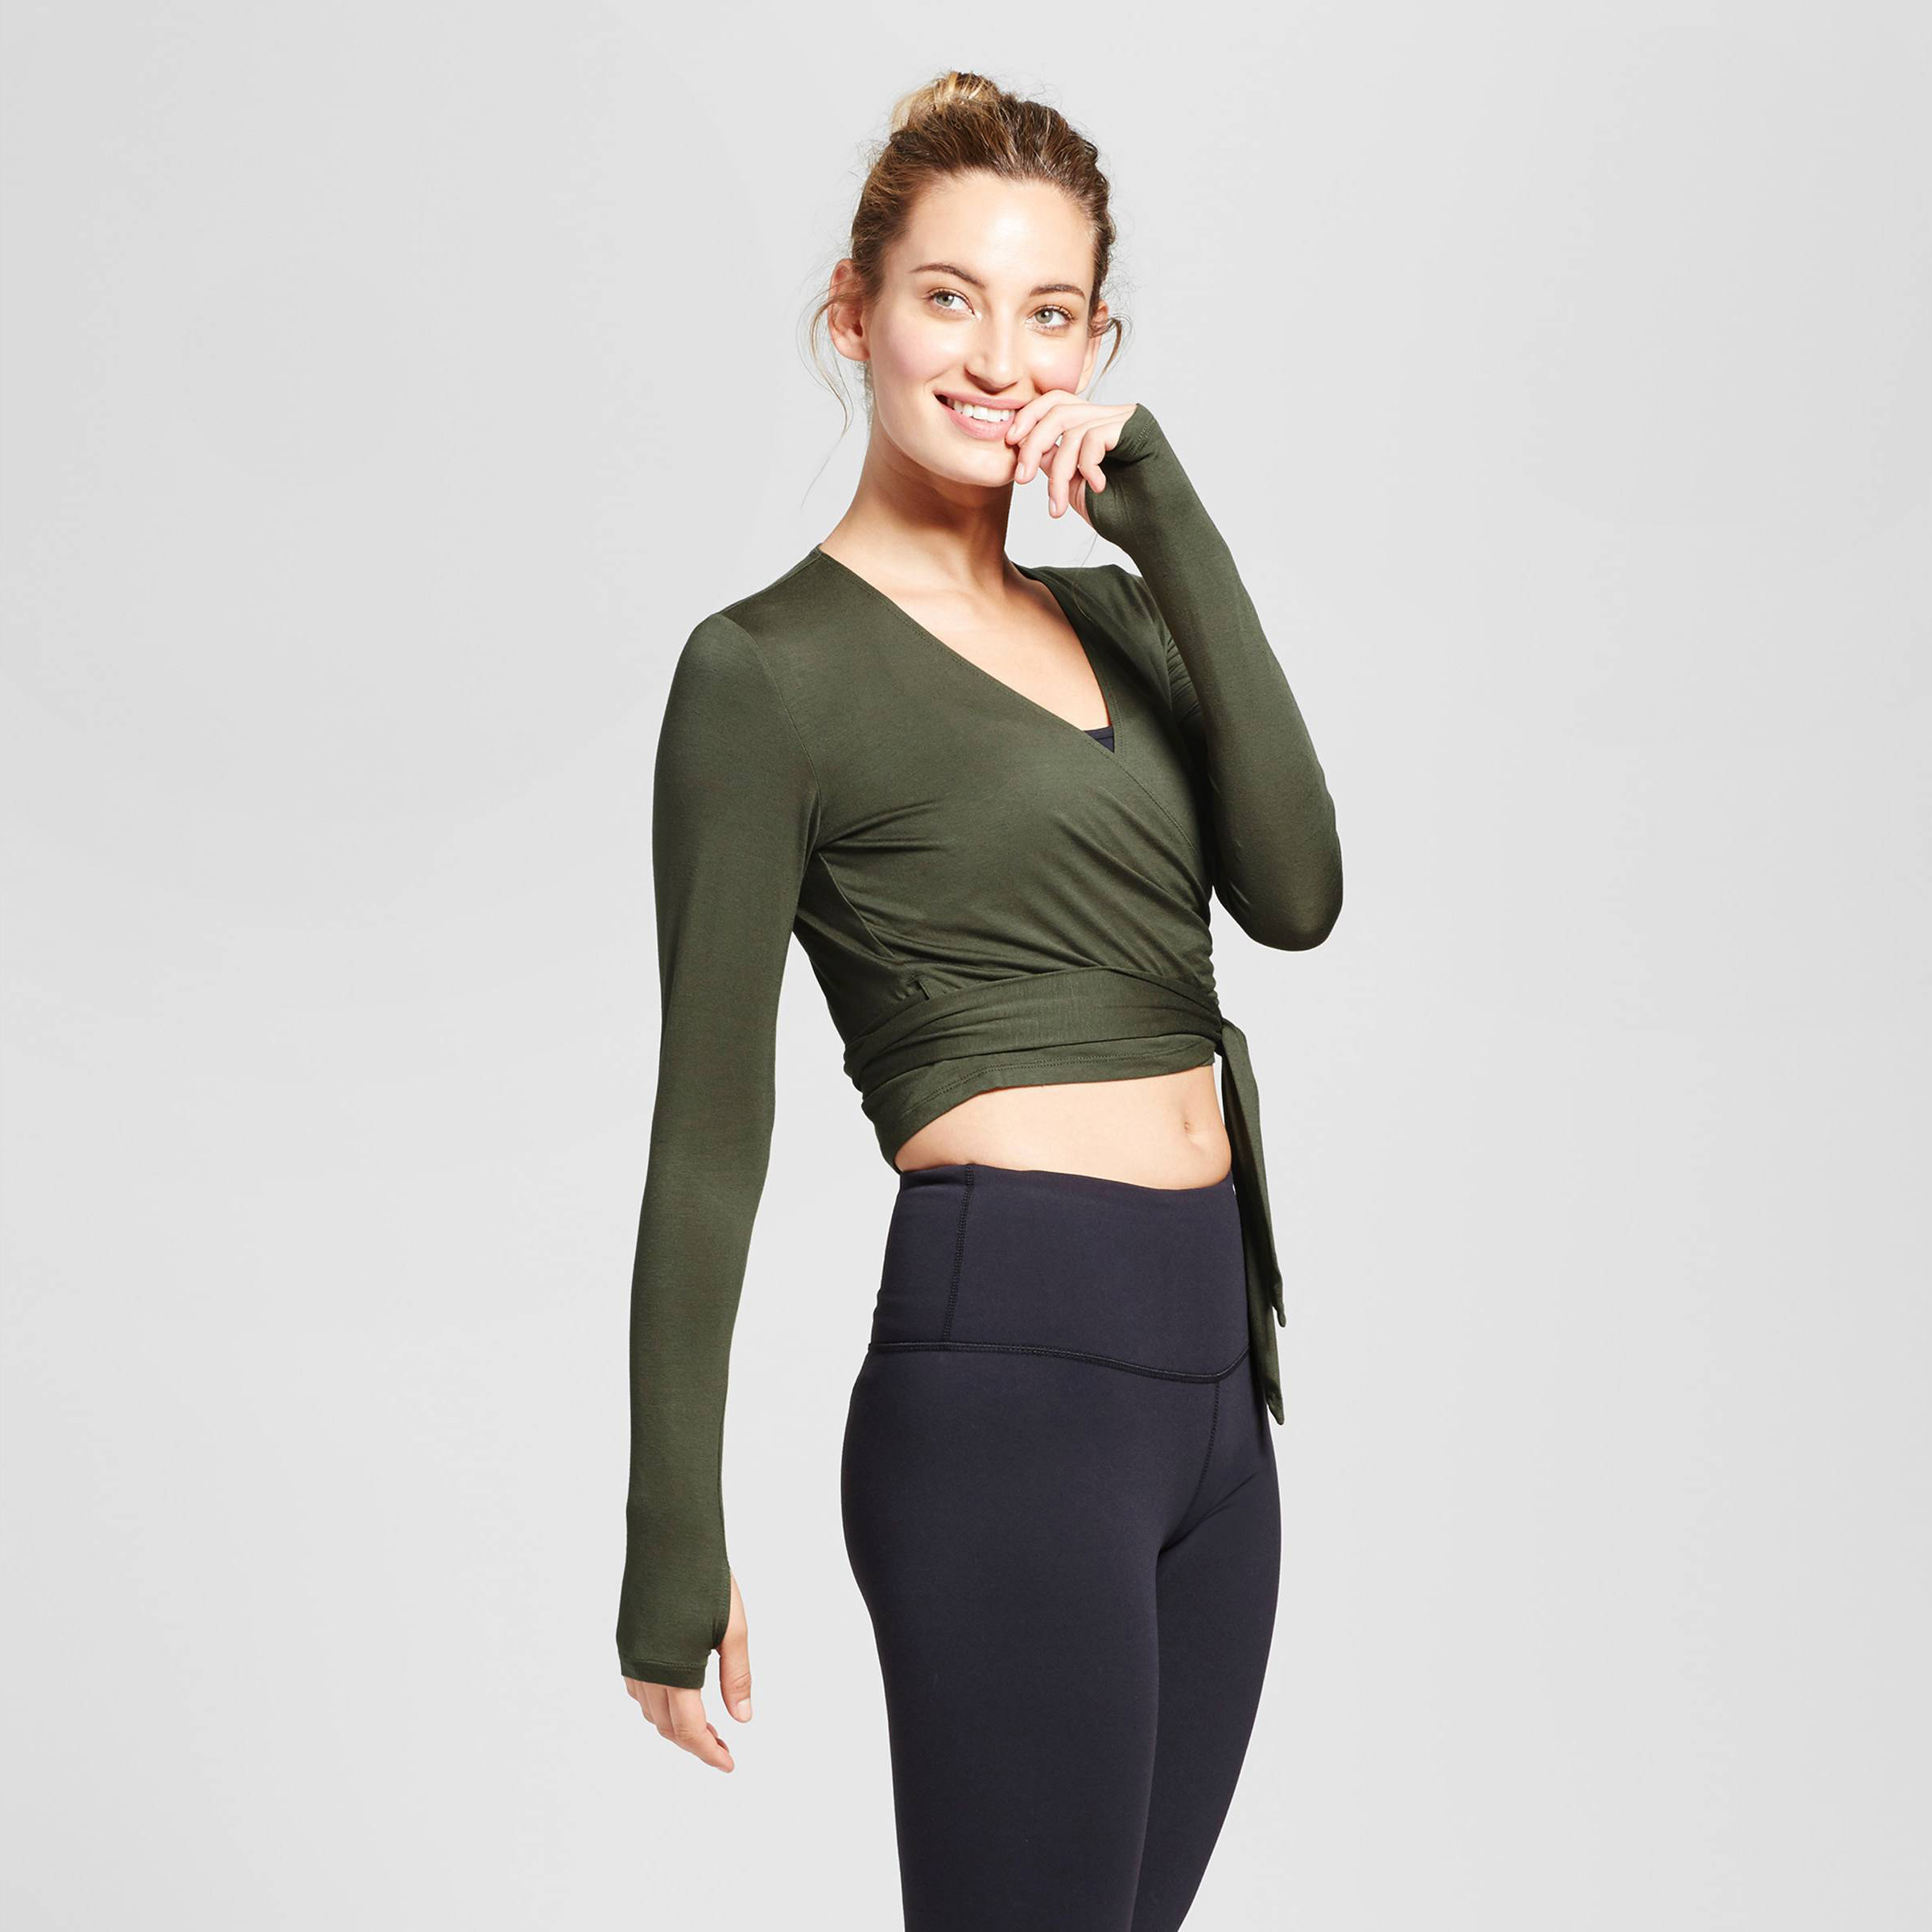 010052926c5bb JoyLab Women s Long Sleeve Wrap T-Shirt  19.99. This shirt gives off major  ballerina vibes and we can t get enough. The front tie helps you get the  perfect ...